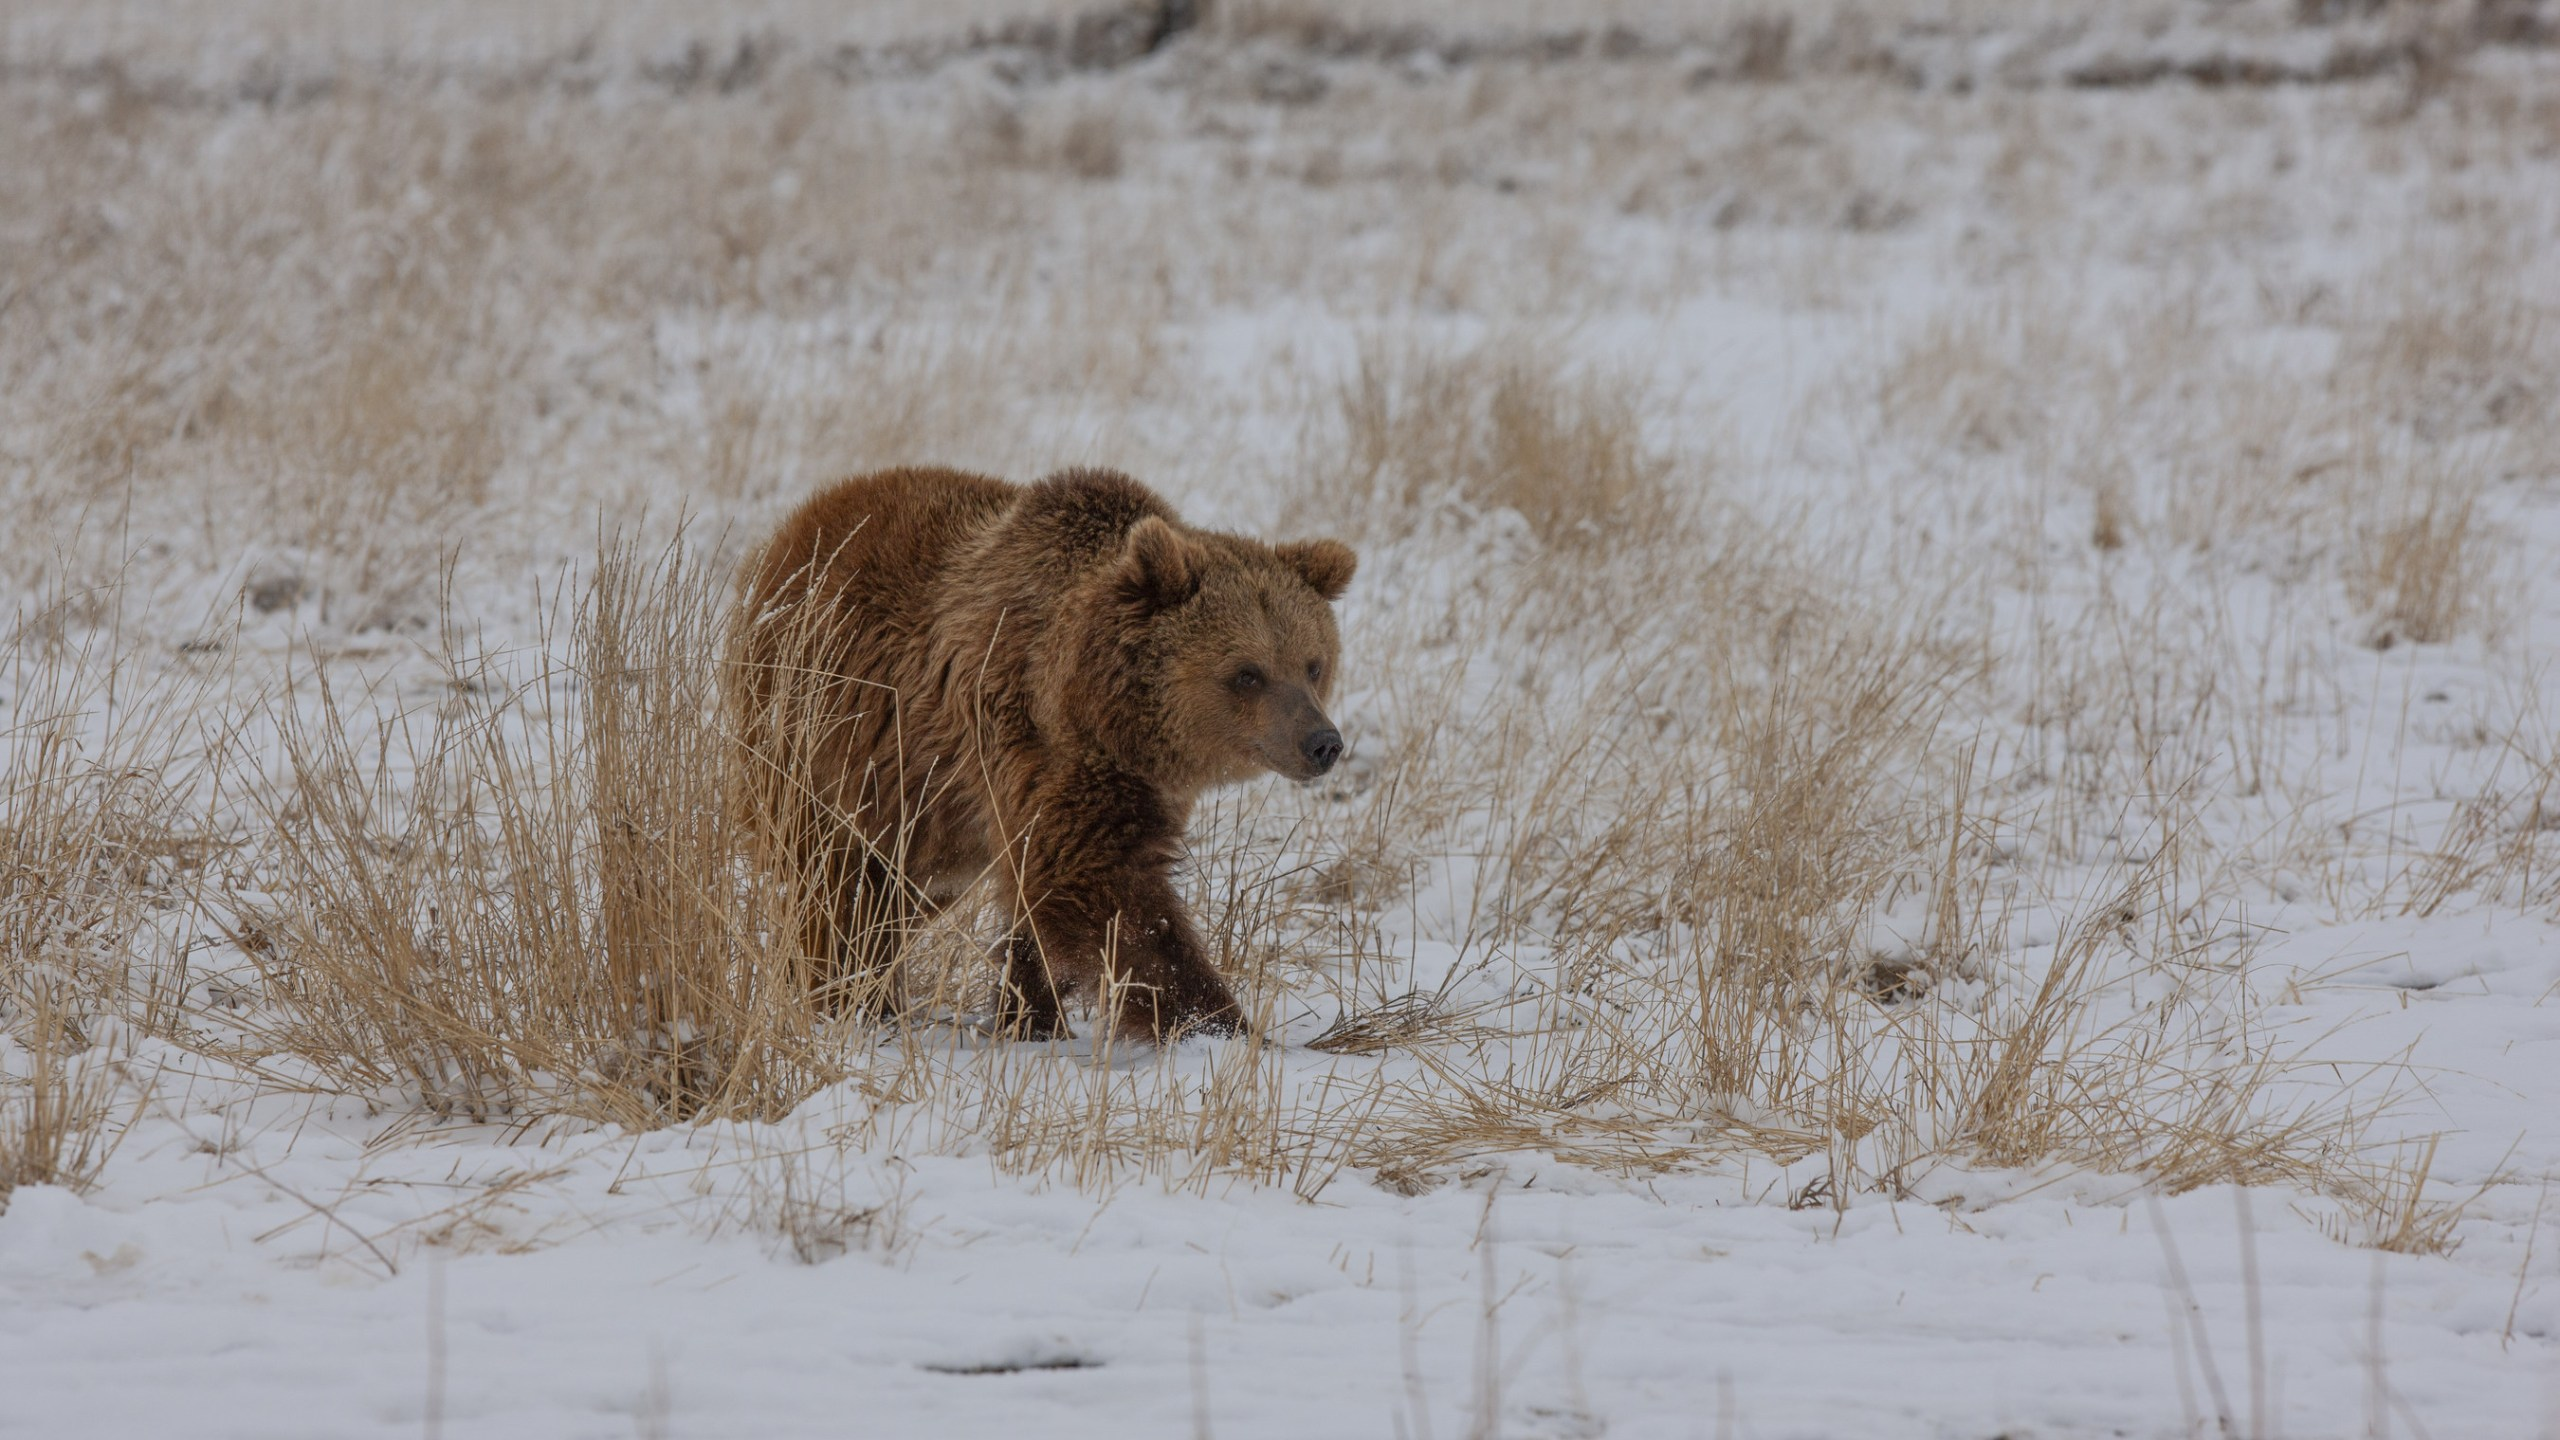 One of the grizzly bears enjoys her first steps of freedom in a natural, large-acreage habitat at The Wild Animal Sanctuary in Colorado. / Photo courtesy Wild Animal Sanctuary